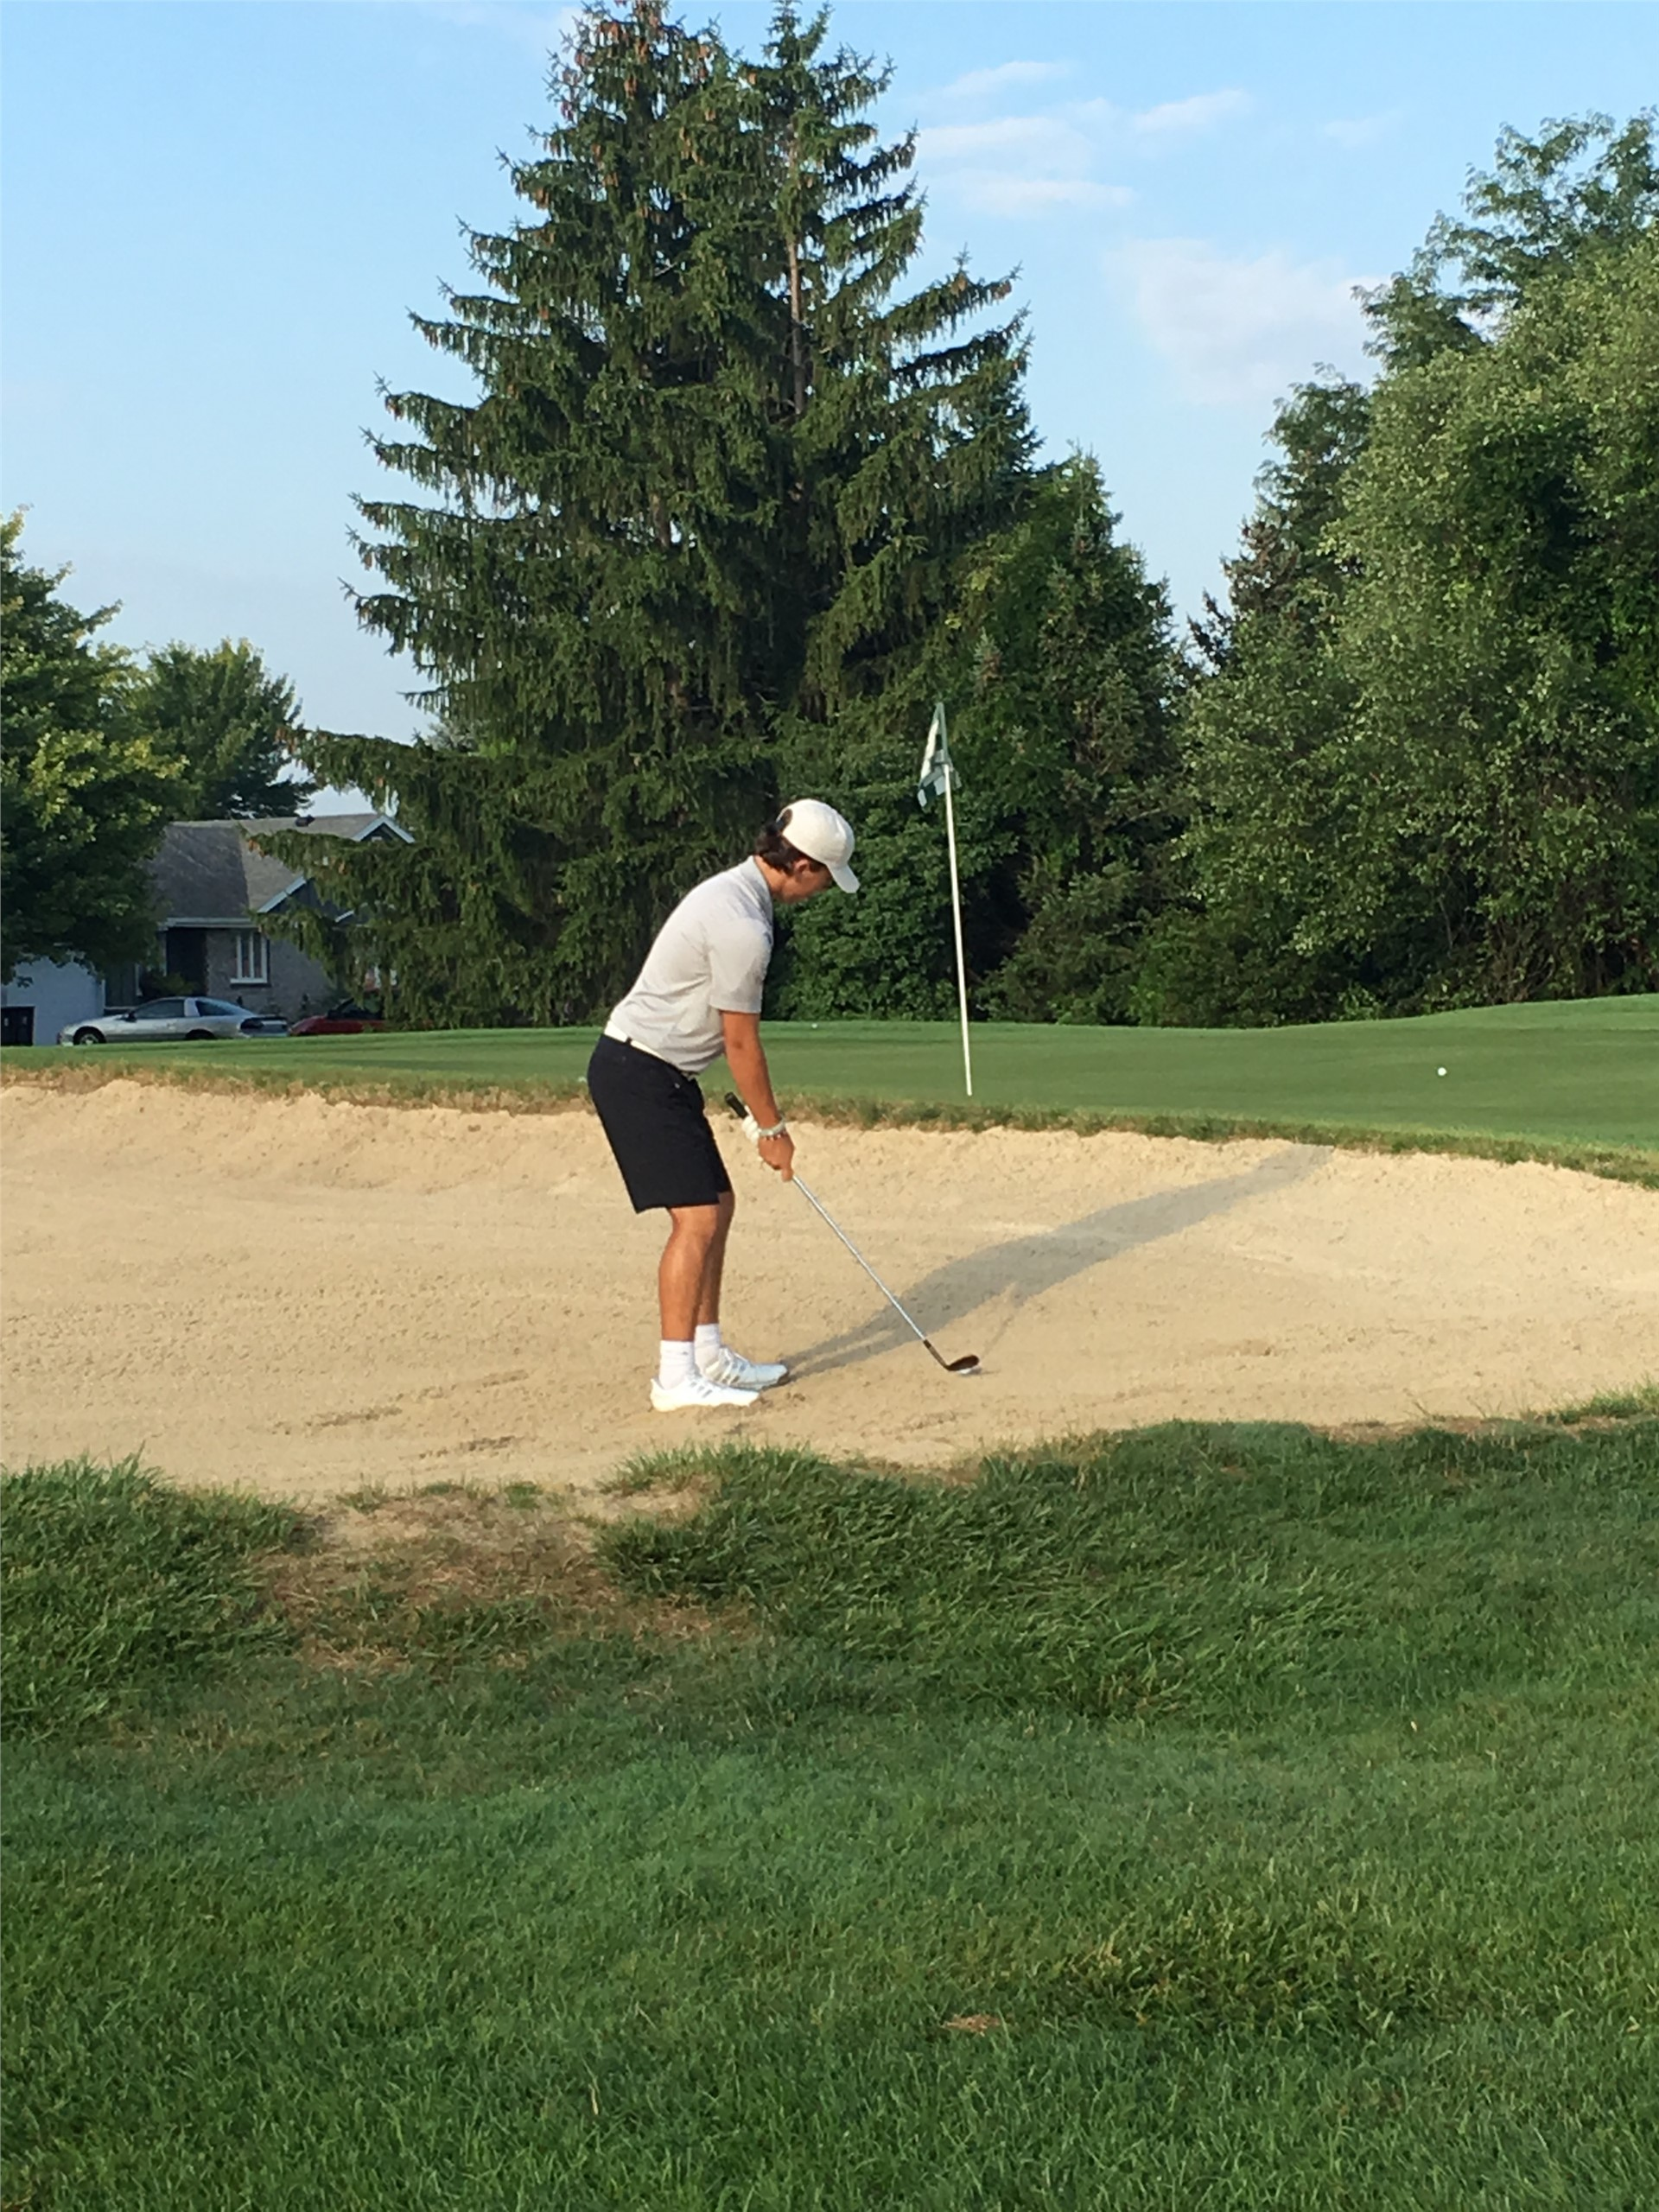 PHS student athlete hitting a golf ball out of the sand